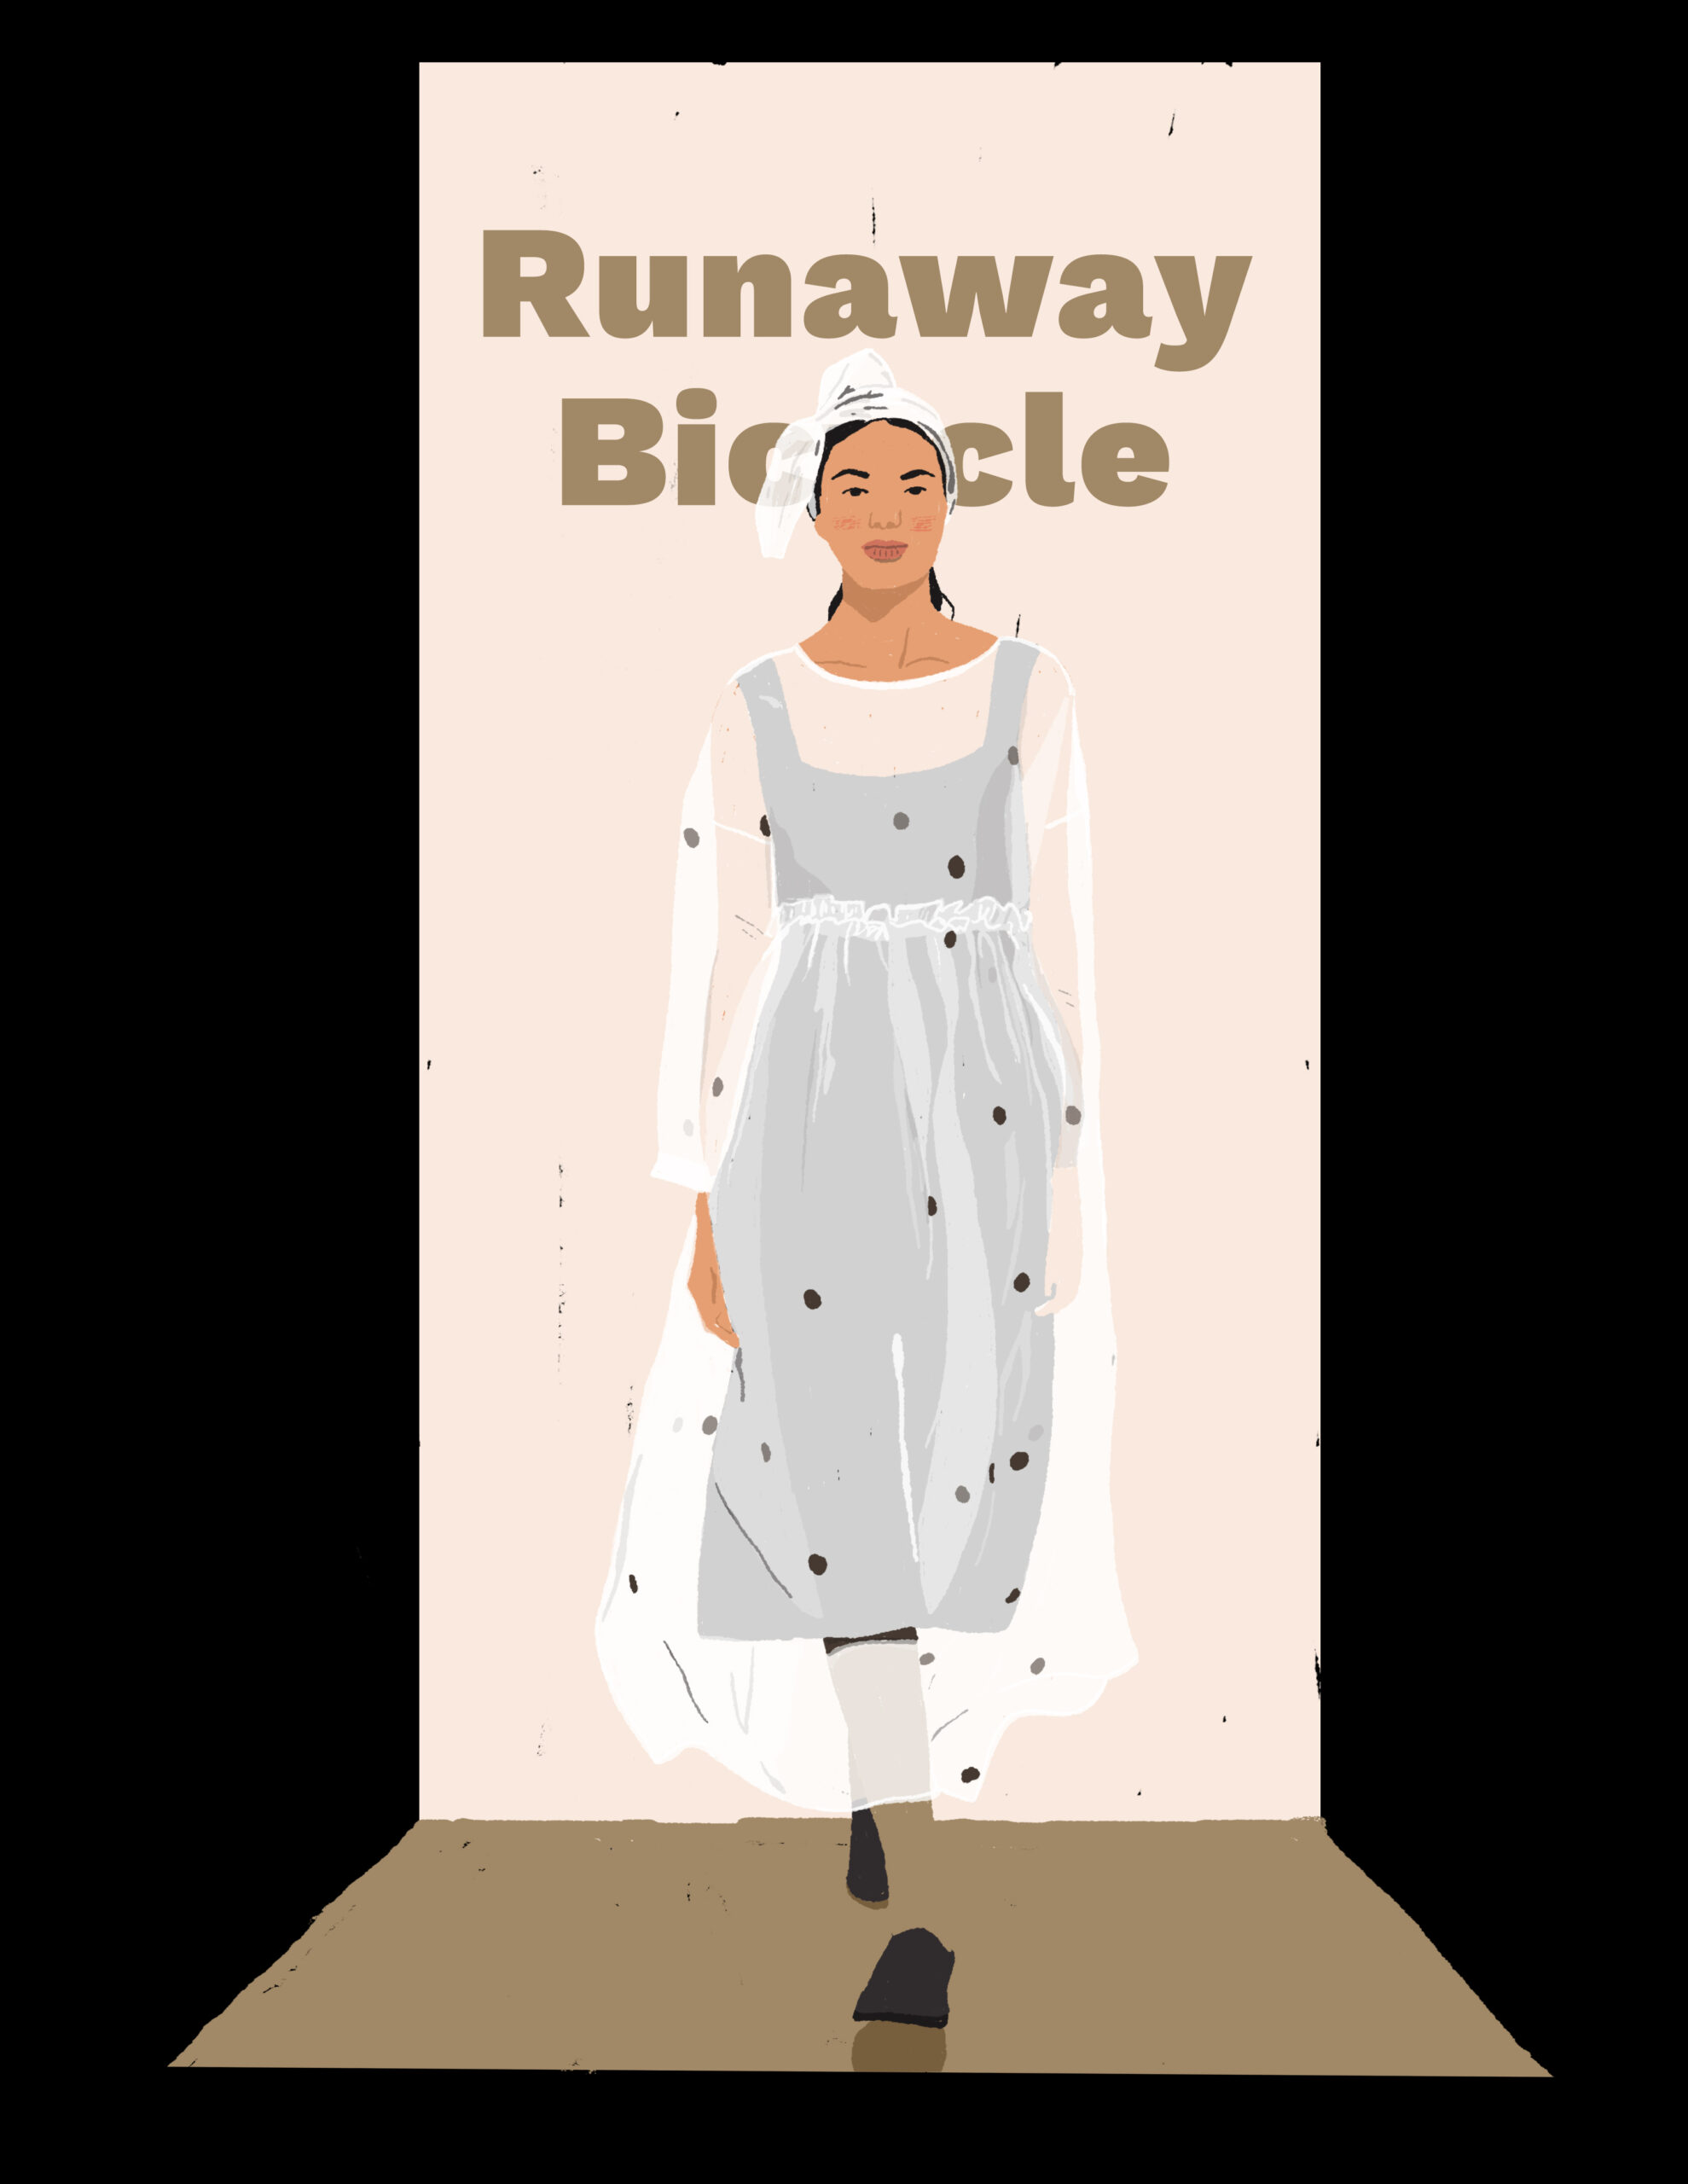 Runaway-Bicycle